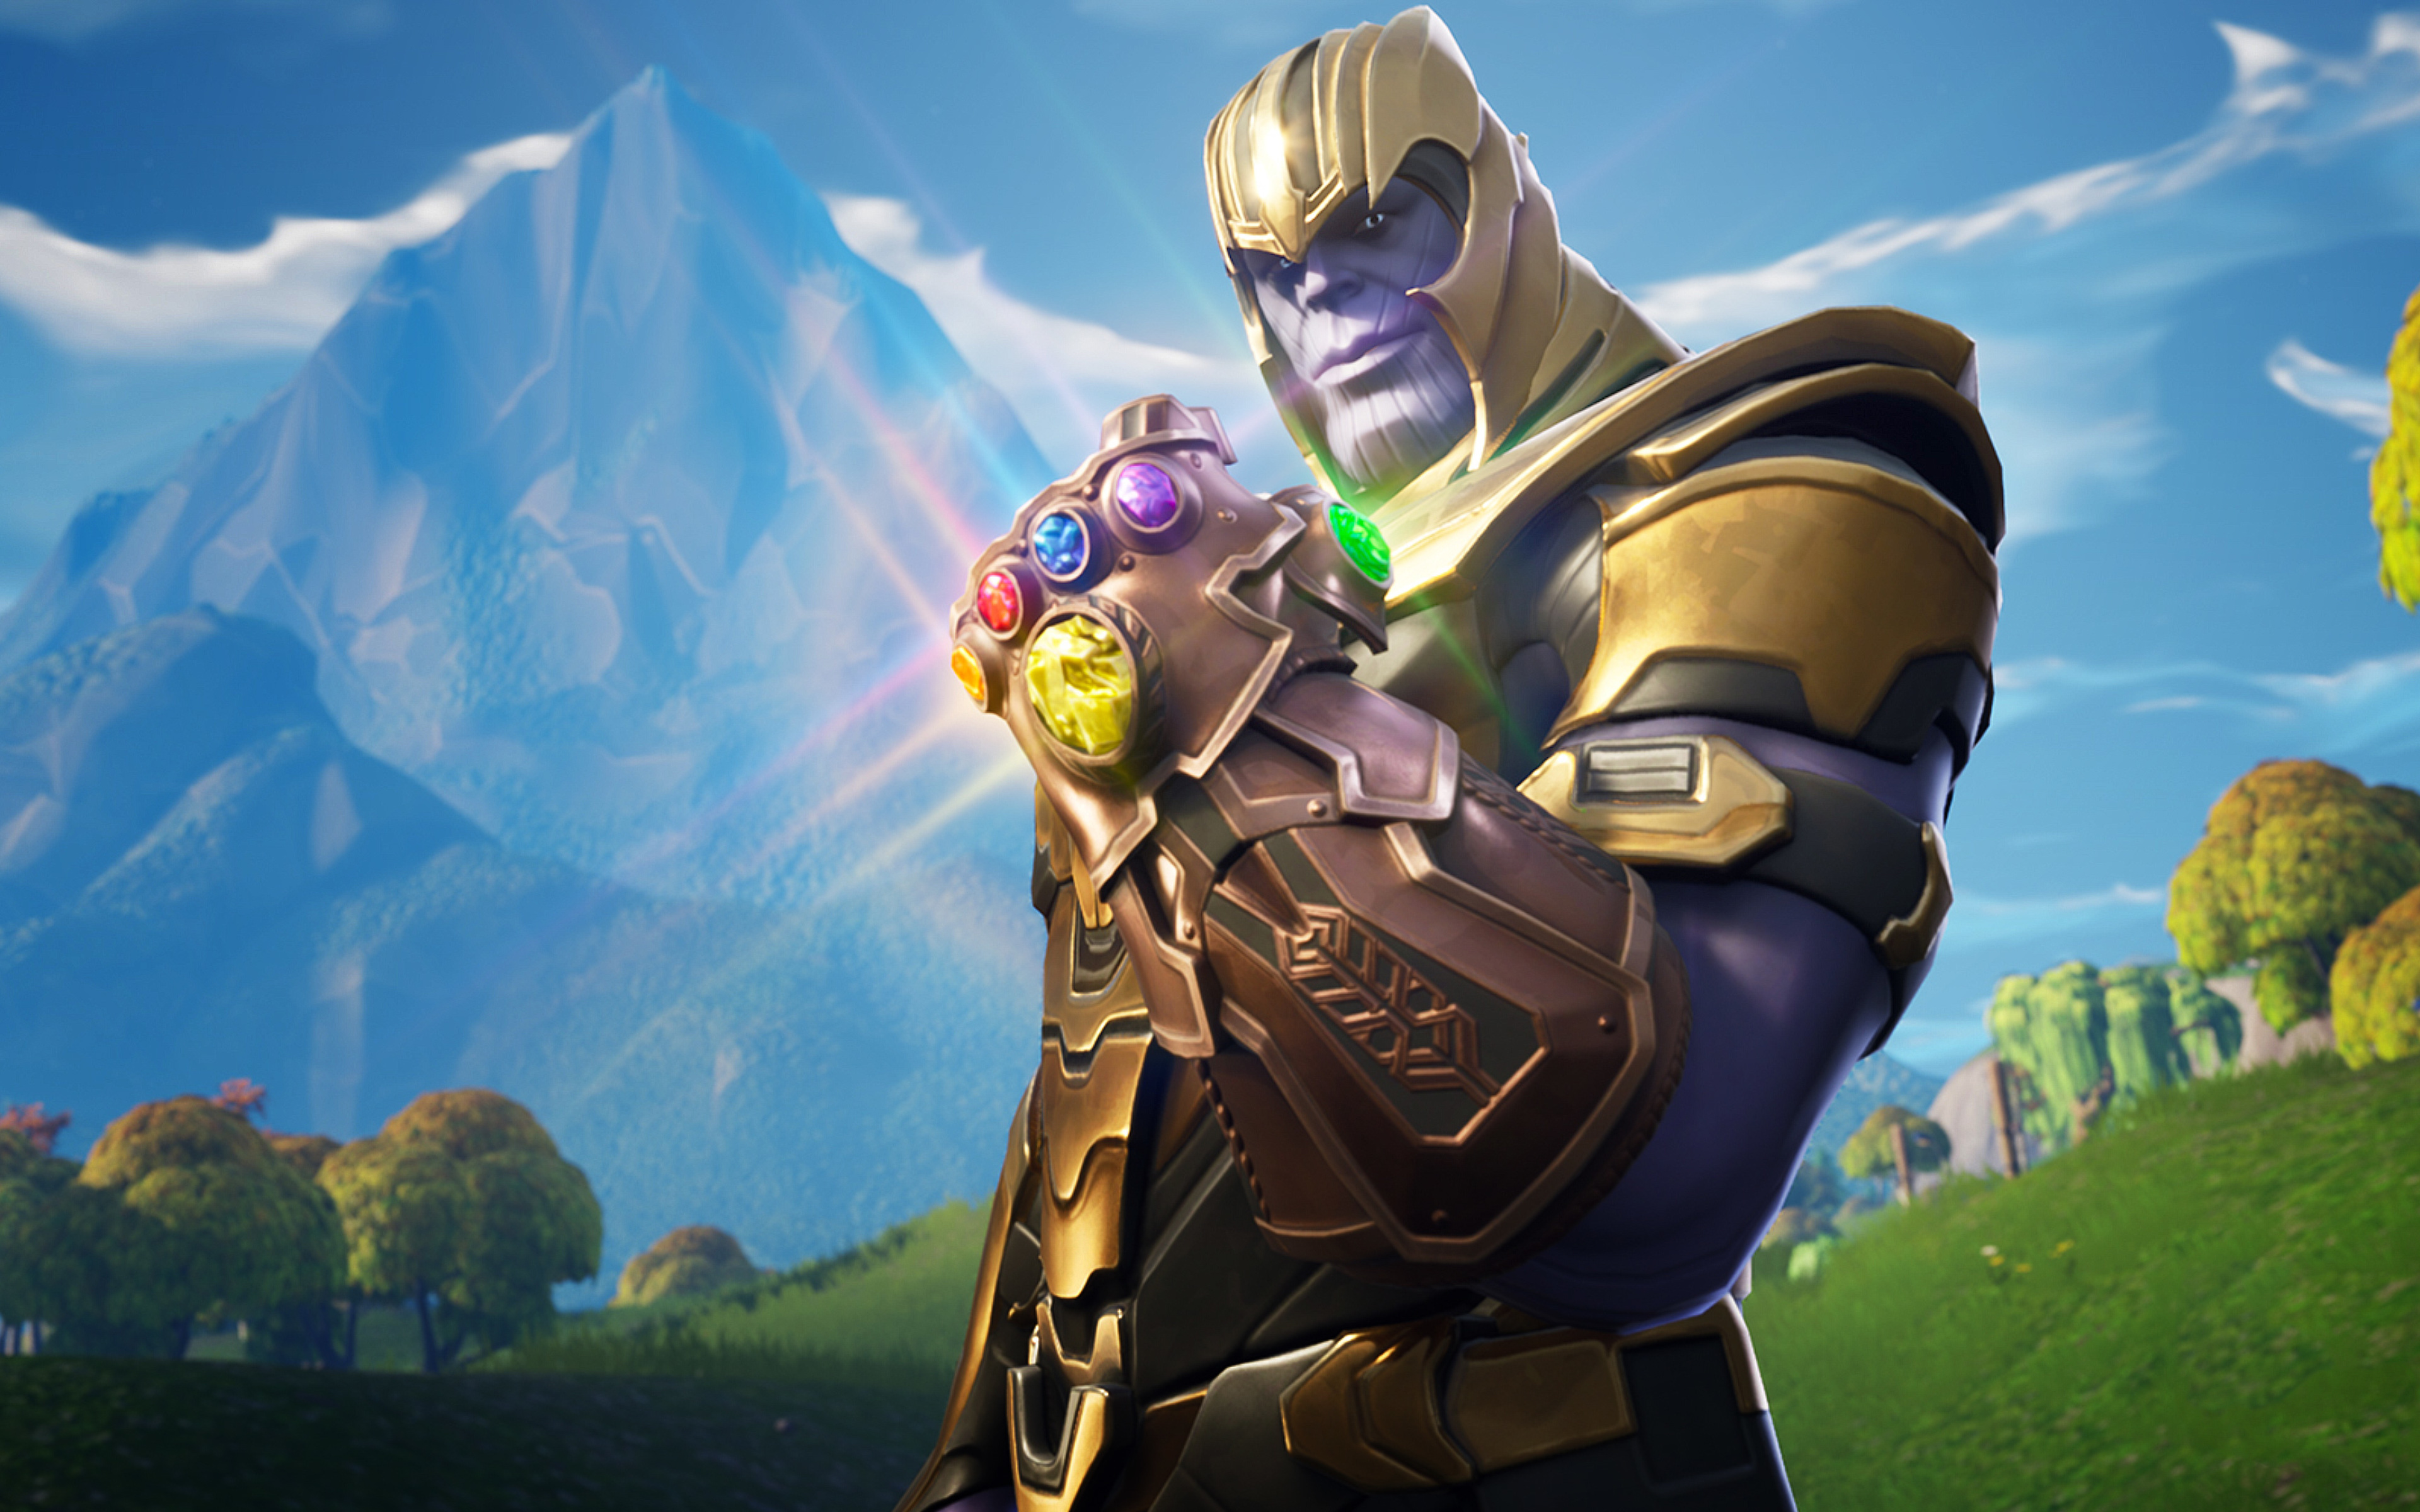 3840x2400 Thanos In Fortnite Battle Royale 4k HD 4k Wallpapers